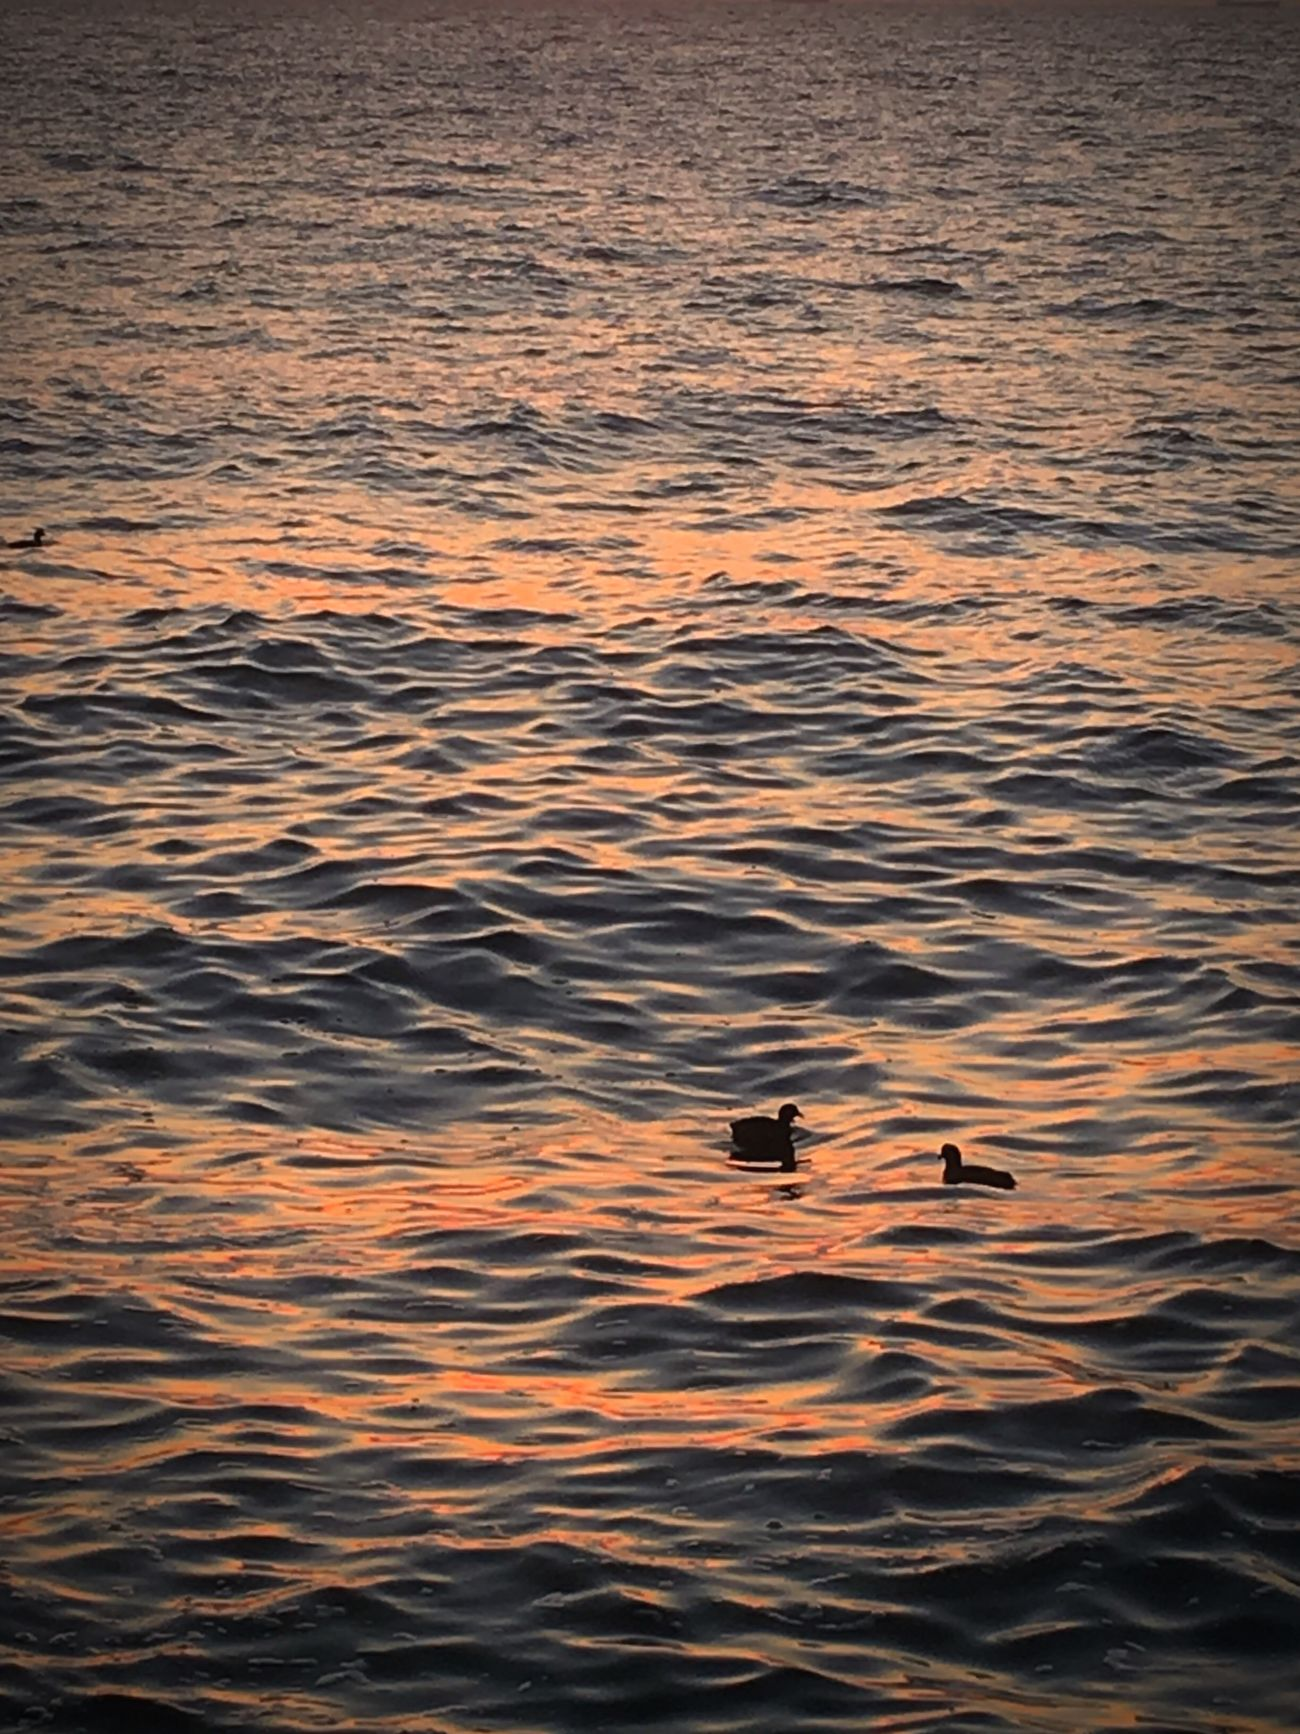 Sky Bird Nature Animals In The Wild Water Animal Themes Waterfront Rippled No People Animal Wildlife Beauty In Nature Duck Sunset Tokyo Ocean View Japan Tokyo Bay Chiba Sea Outdoors Day